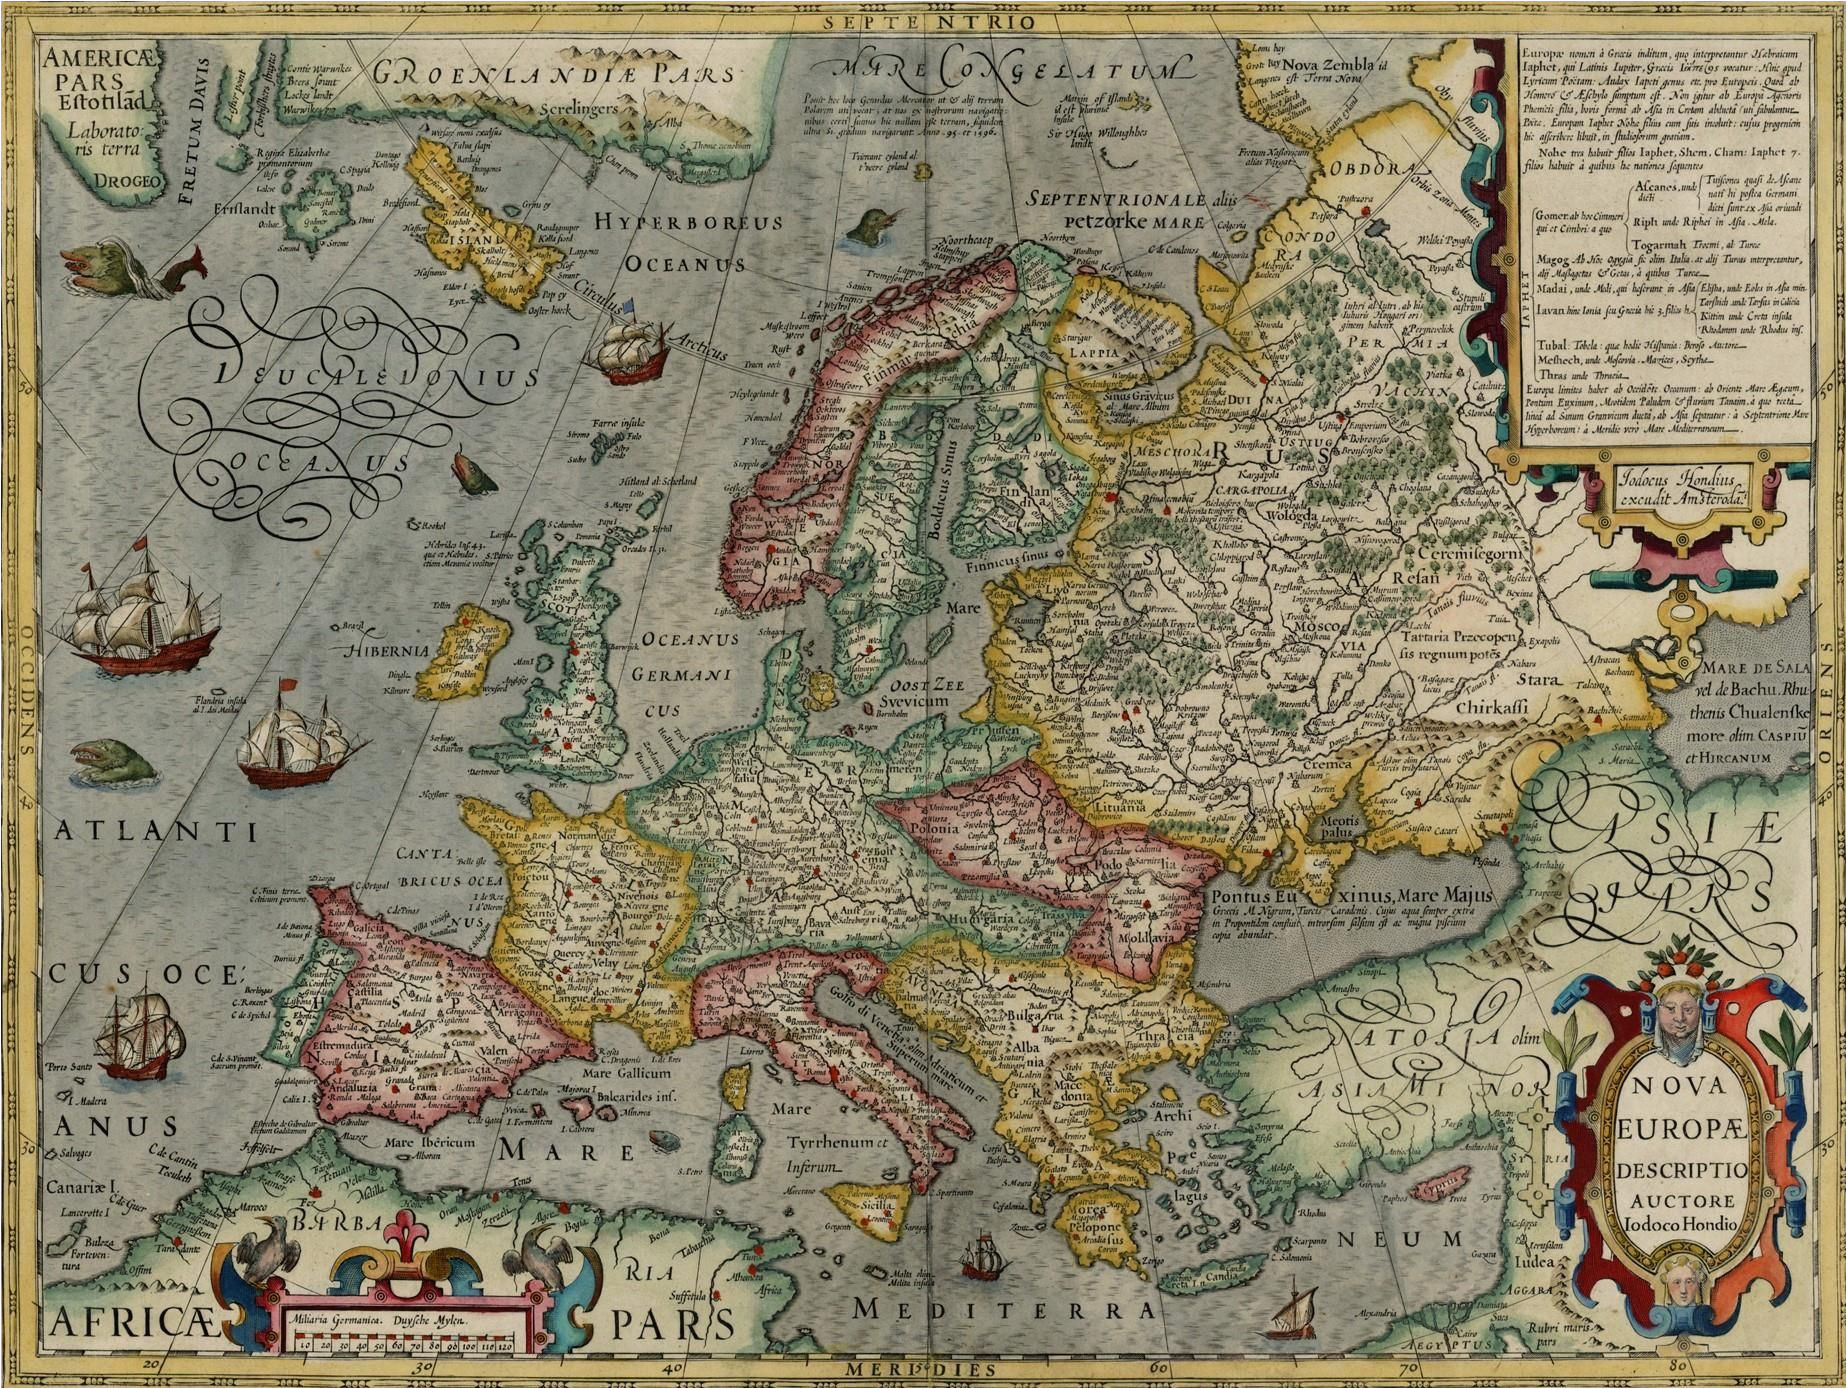 Picardy France Map Map Of Europe by Jodocus Hondius 1630 the Map Shows A Massive